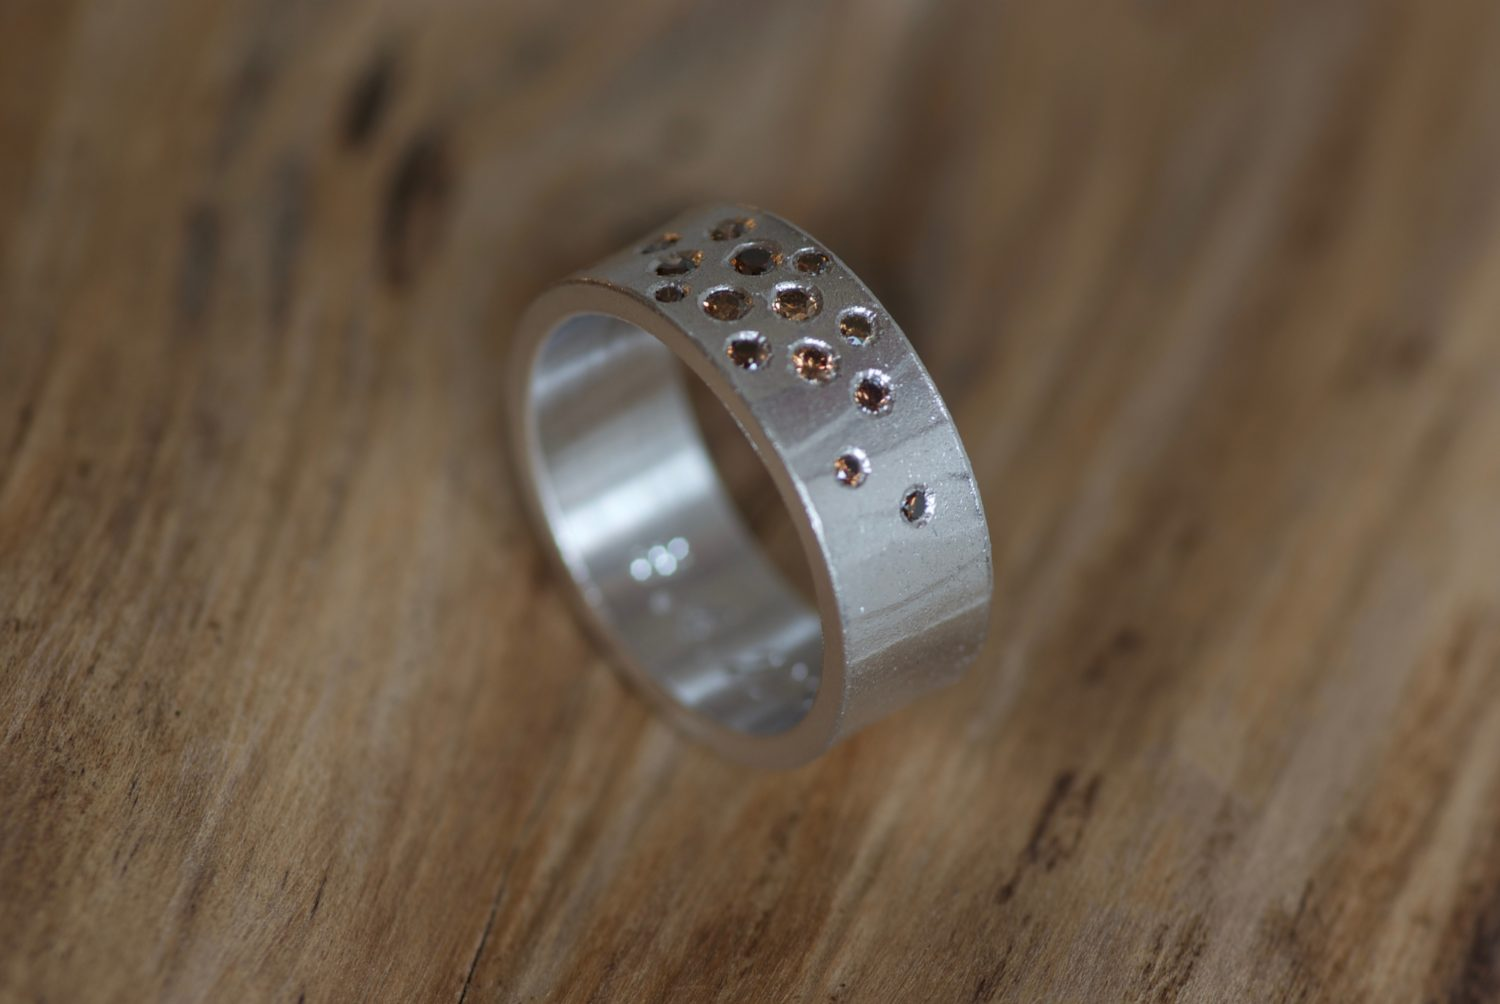 Bague Mikaï constellation. Or gris et diamants cognac.